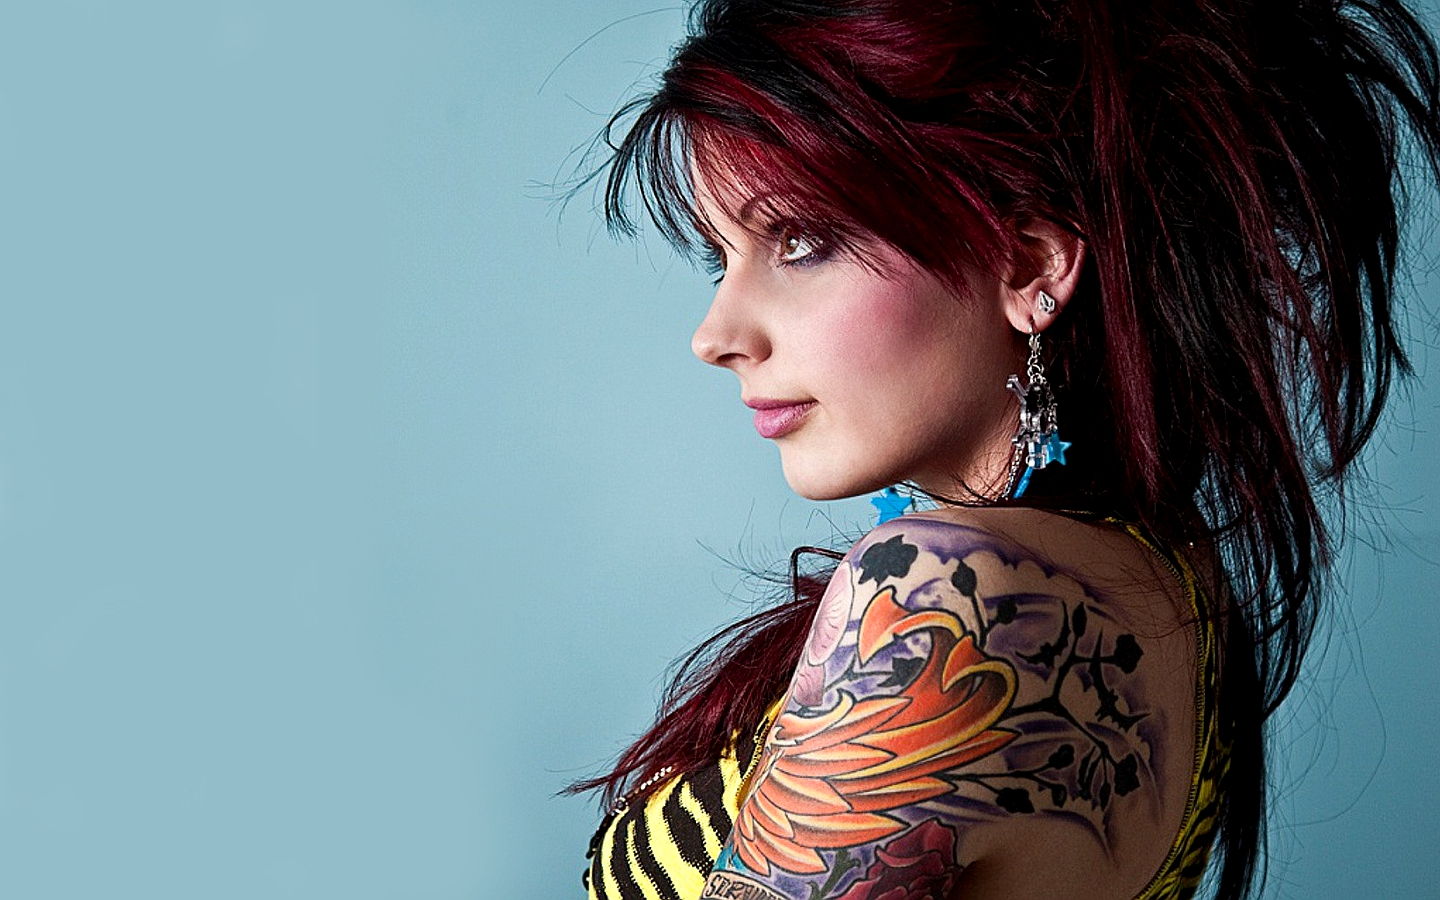 Tattooed Women Wallpaper 1440x900